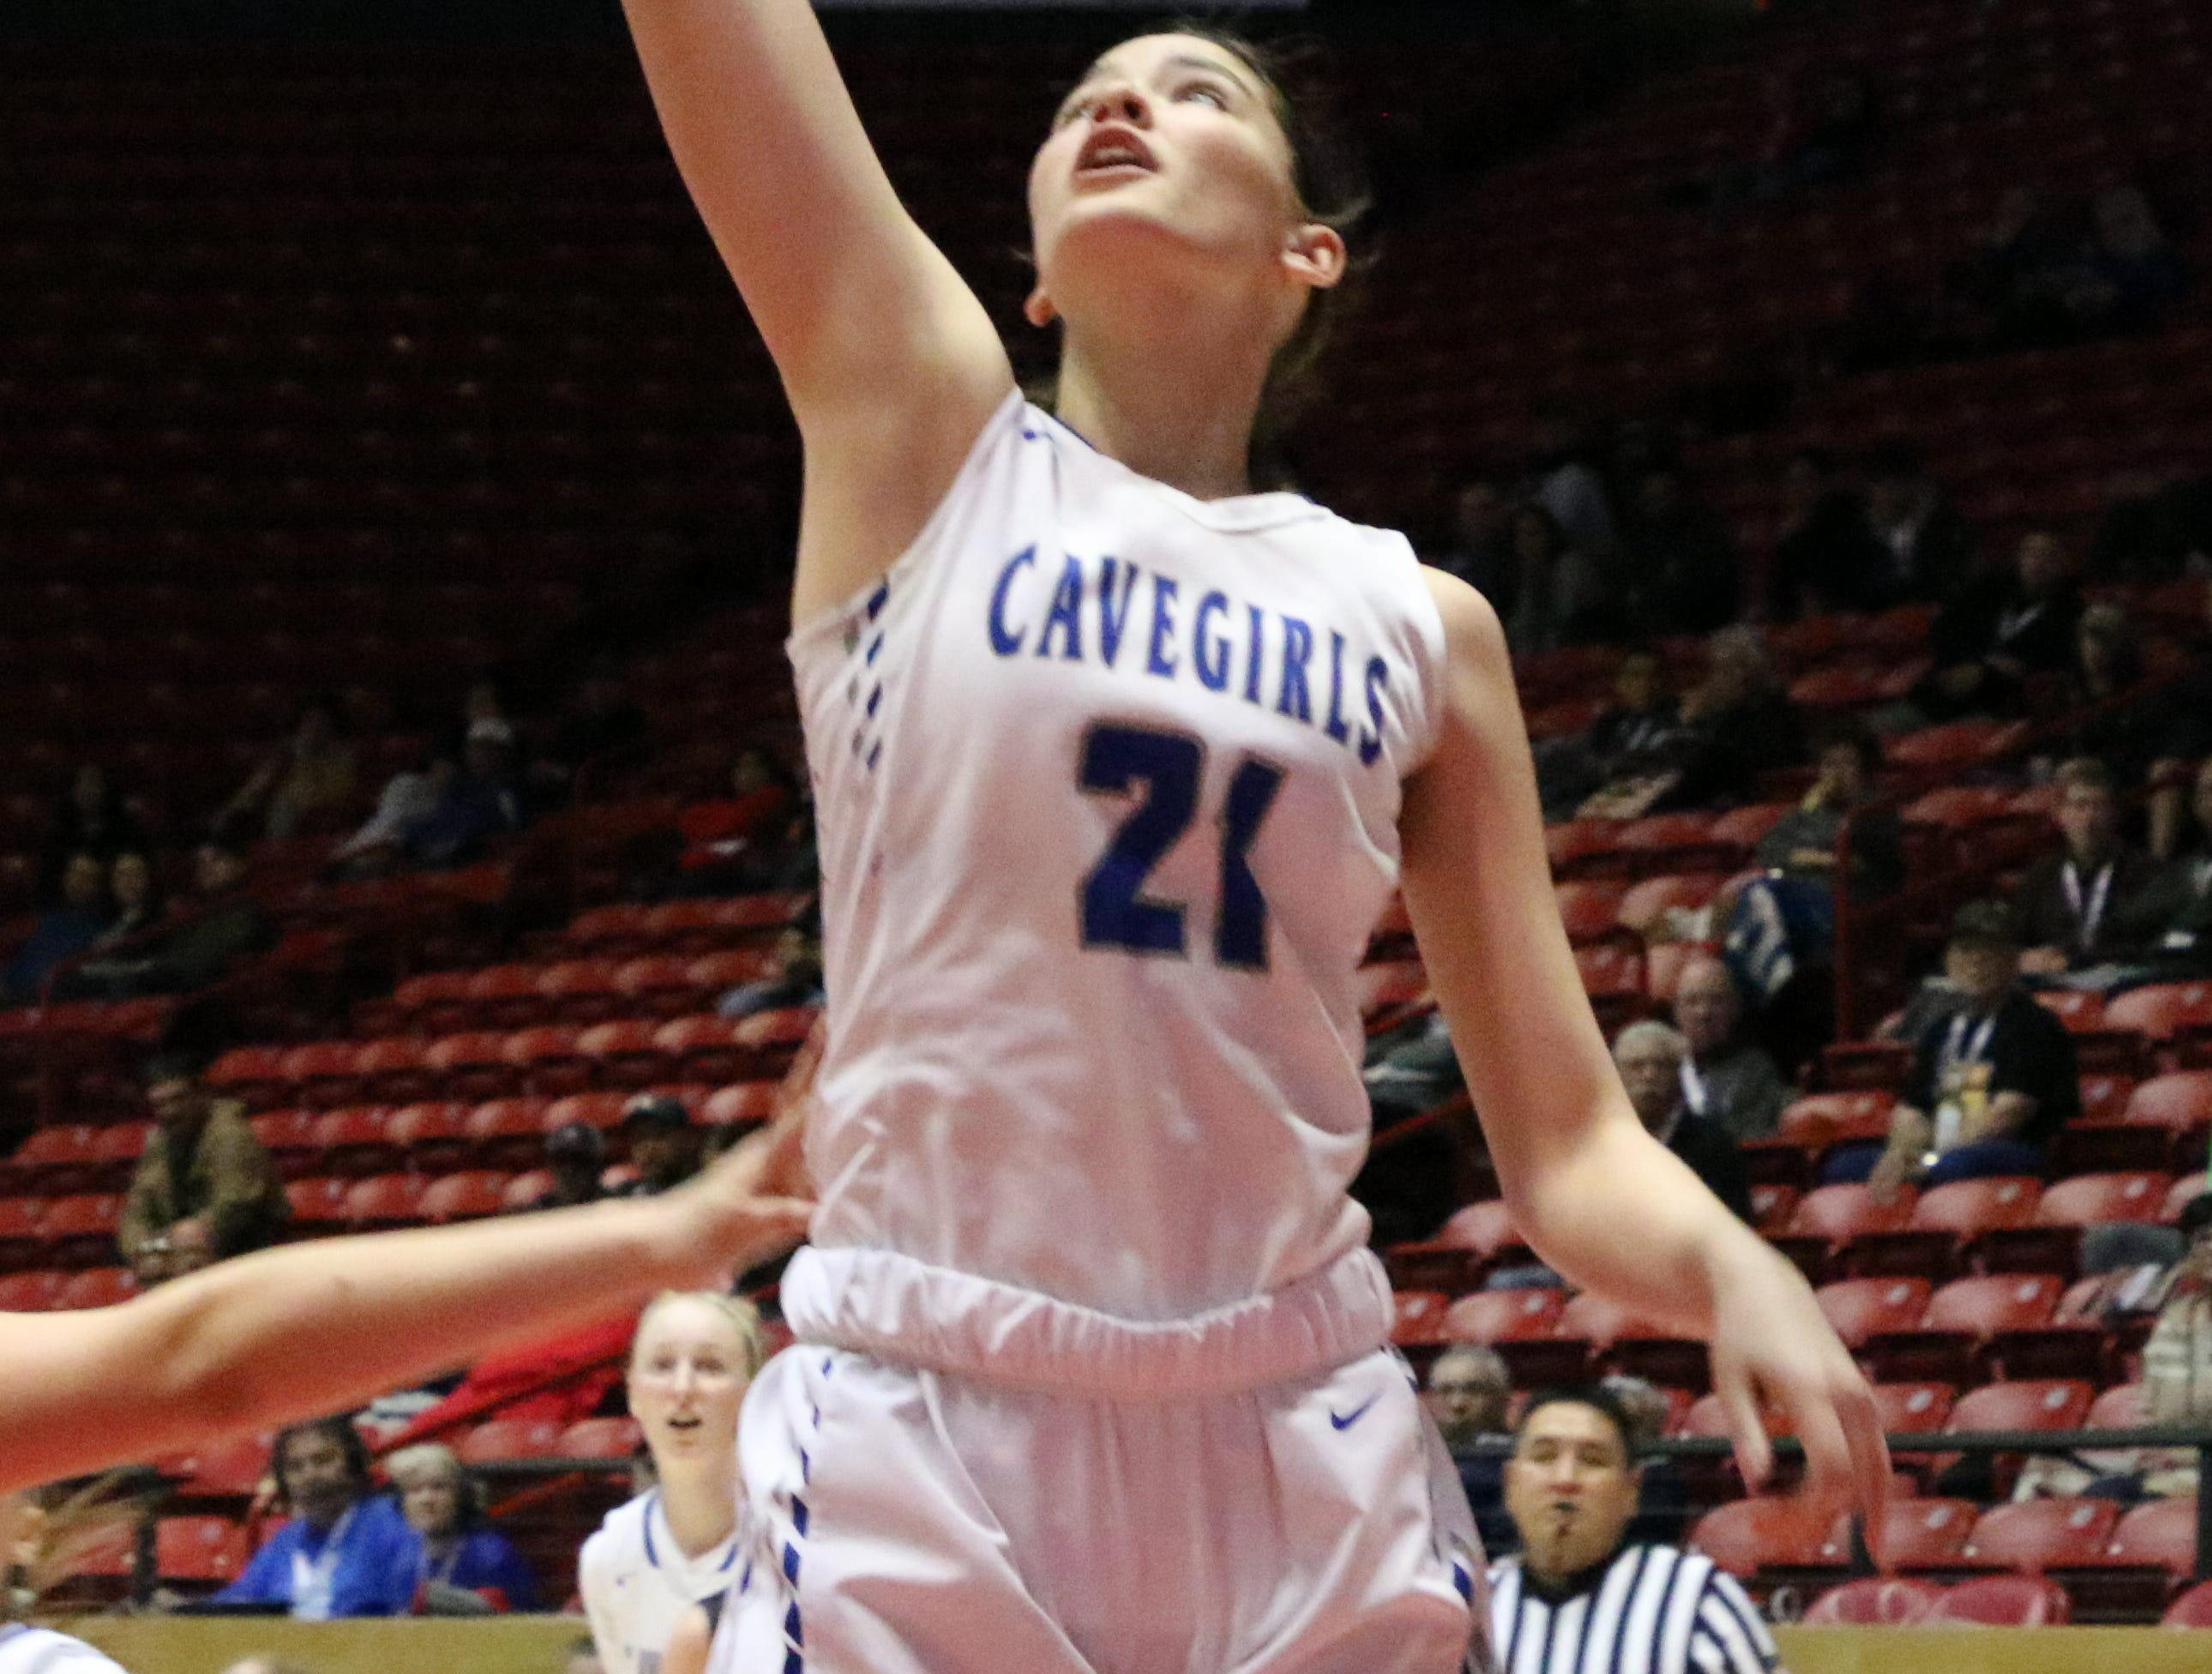 Morgan Boatwright watches her jump shot go in against Volcano Vista.